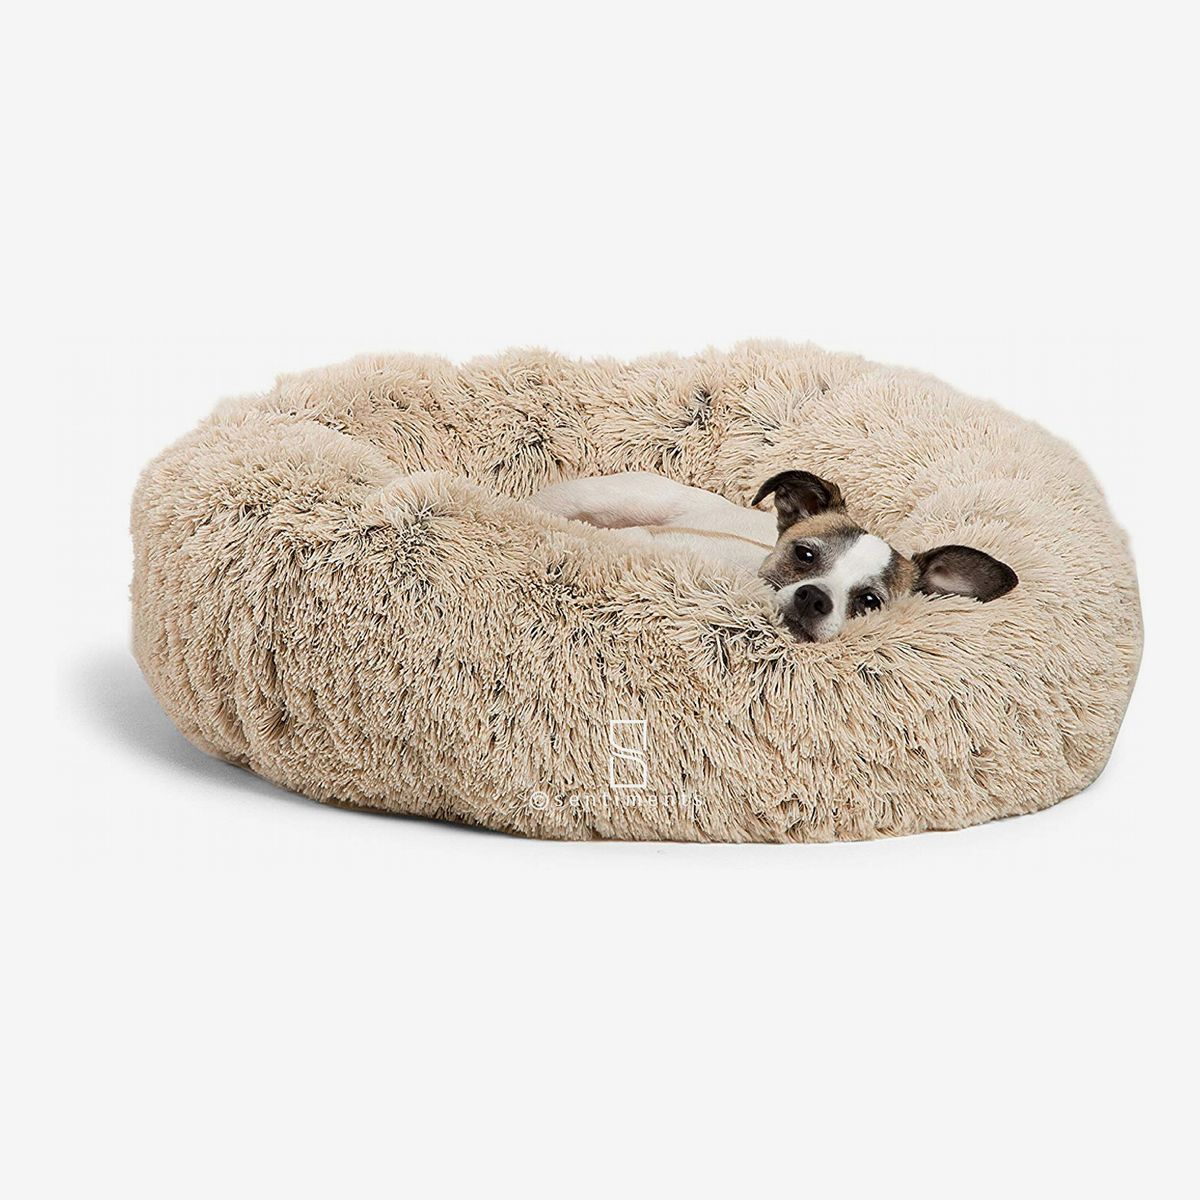 The Best Dog Beds, According to Dog Experts in 2020